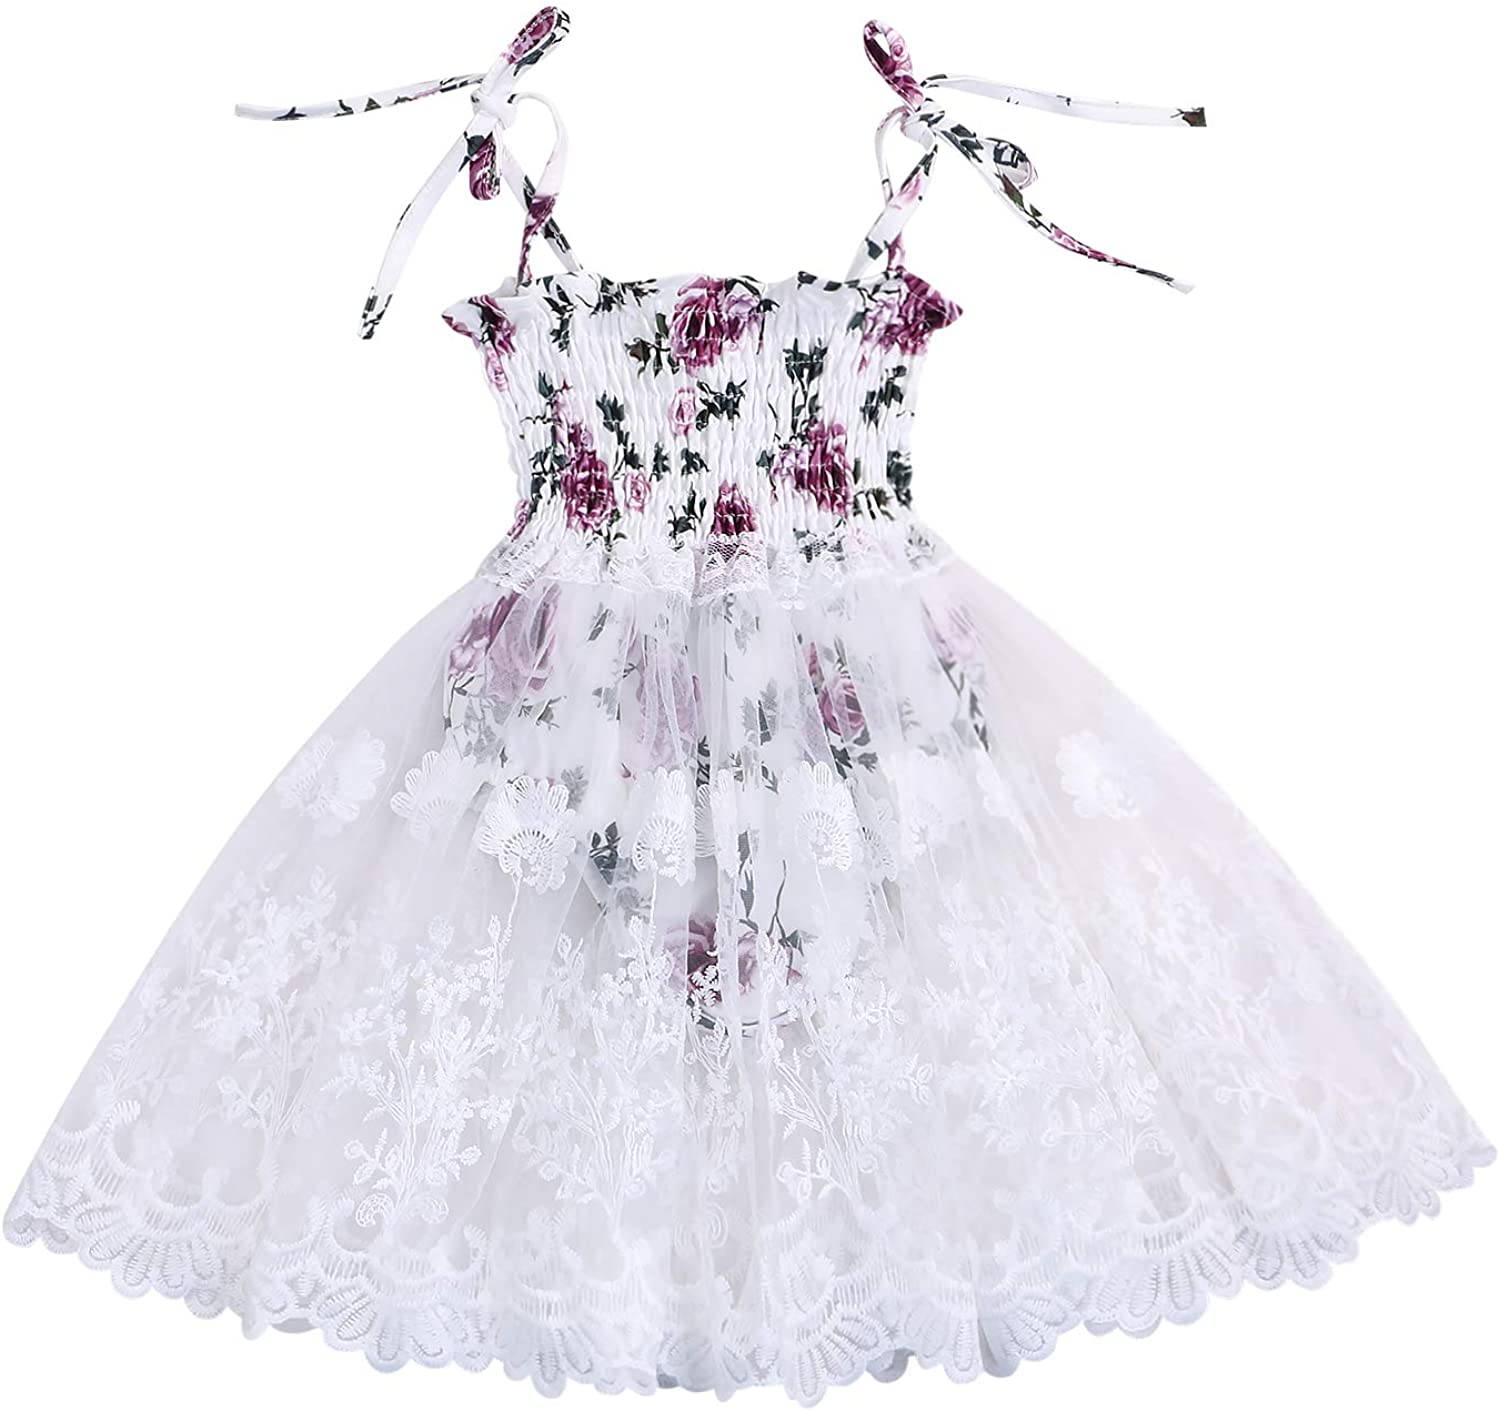 YOUNGER TREE Infant Toddler Baby Girls Summer Dress Ruffle Strap Floral Lace Halter Dresses Peplum Romper Outfit